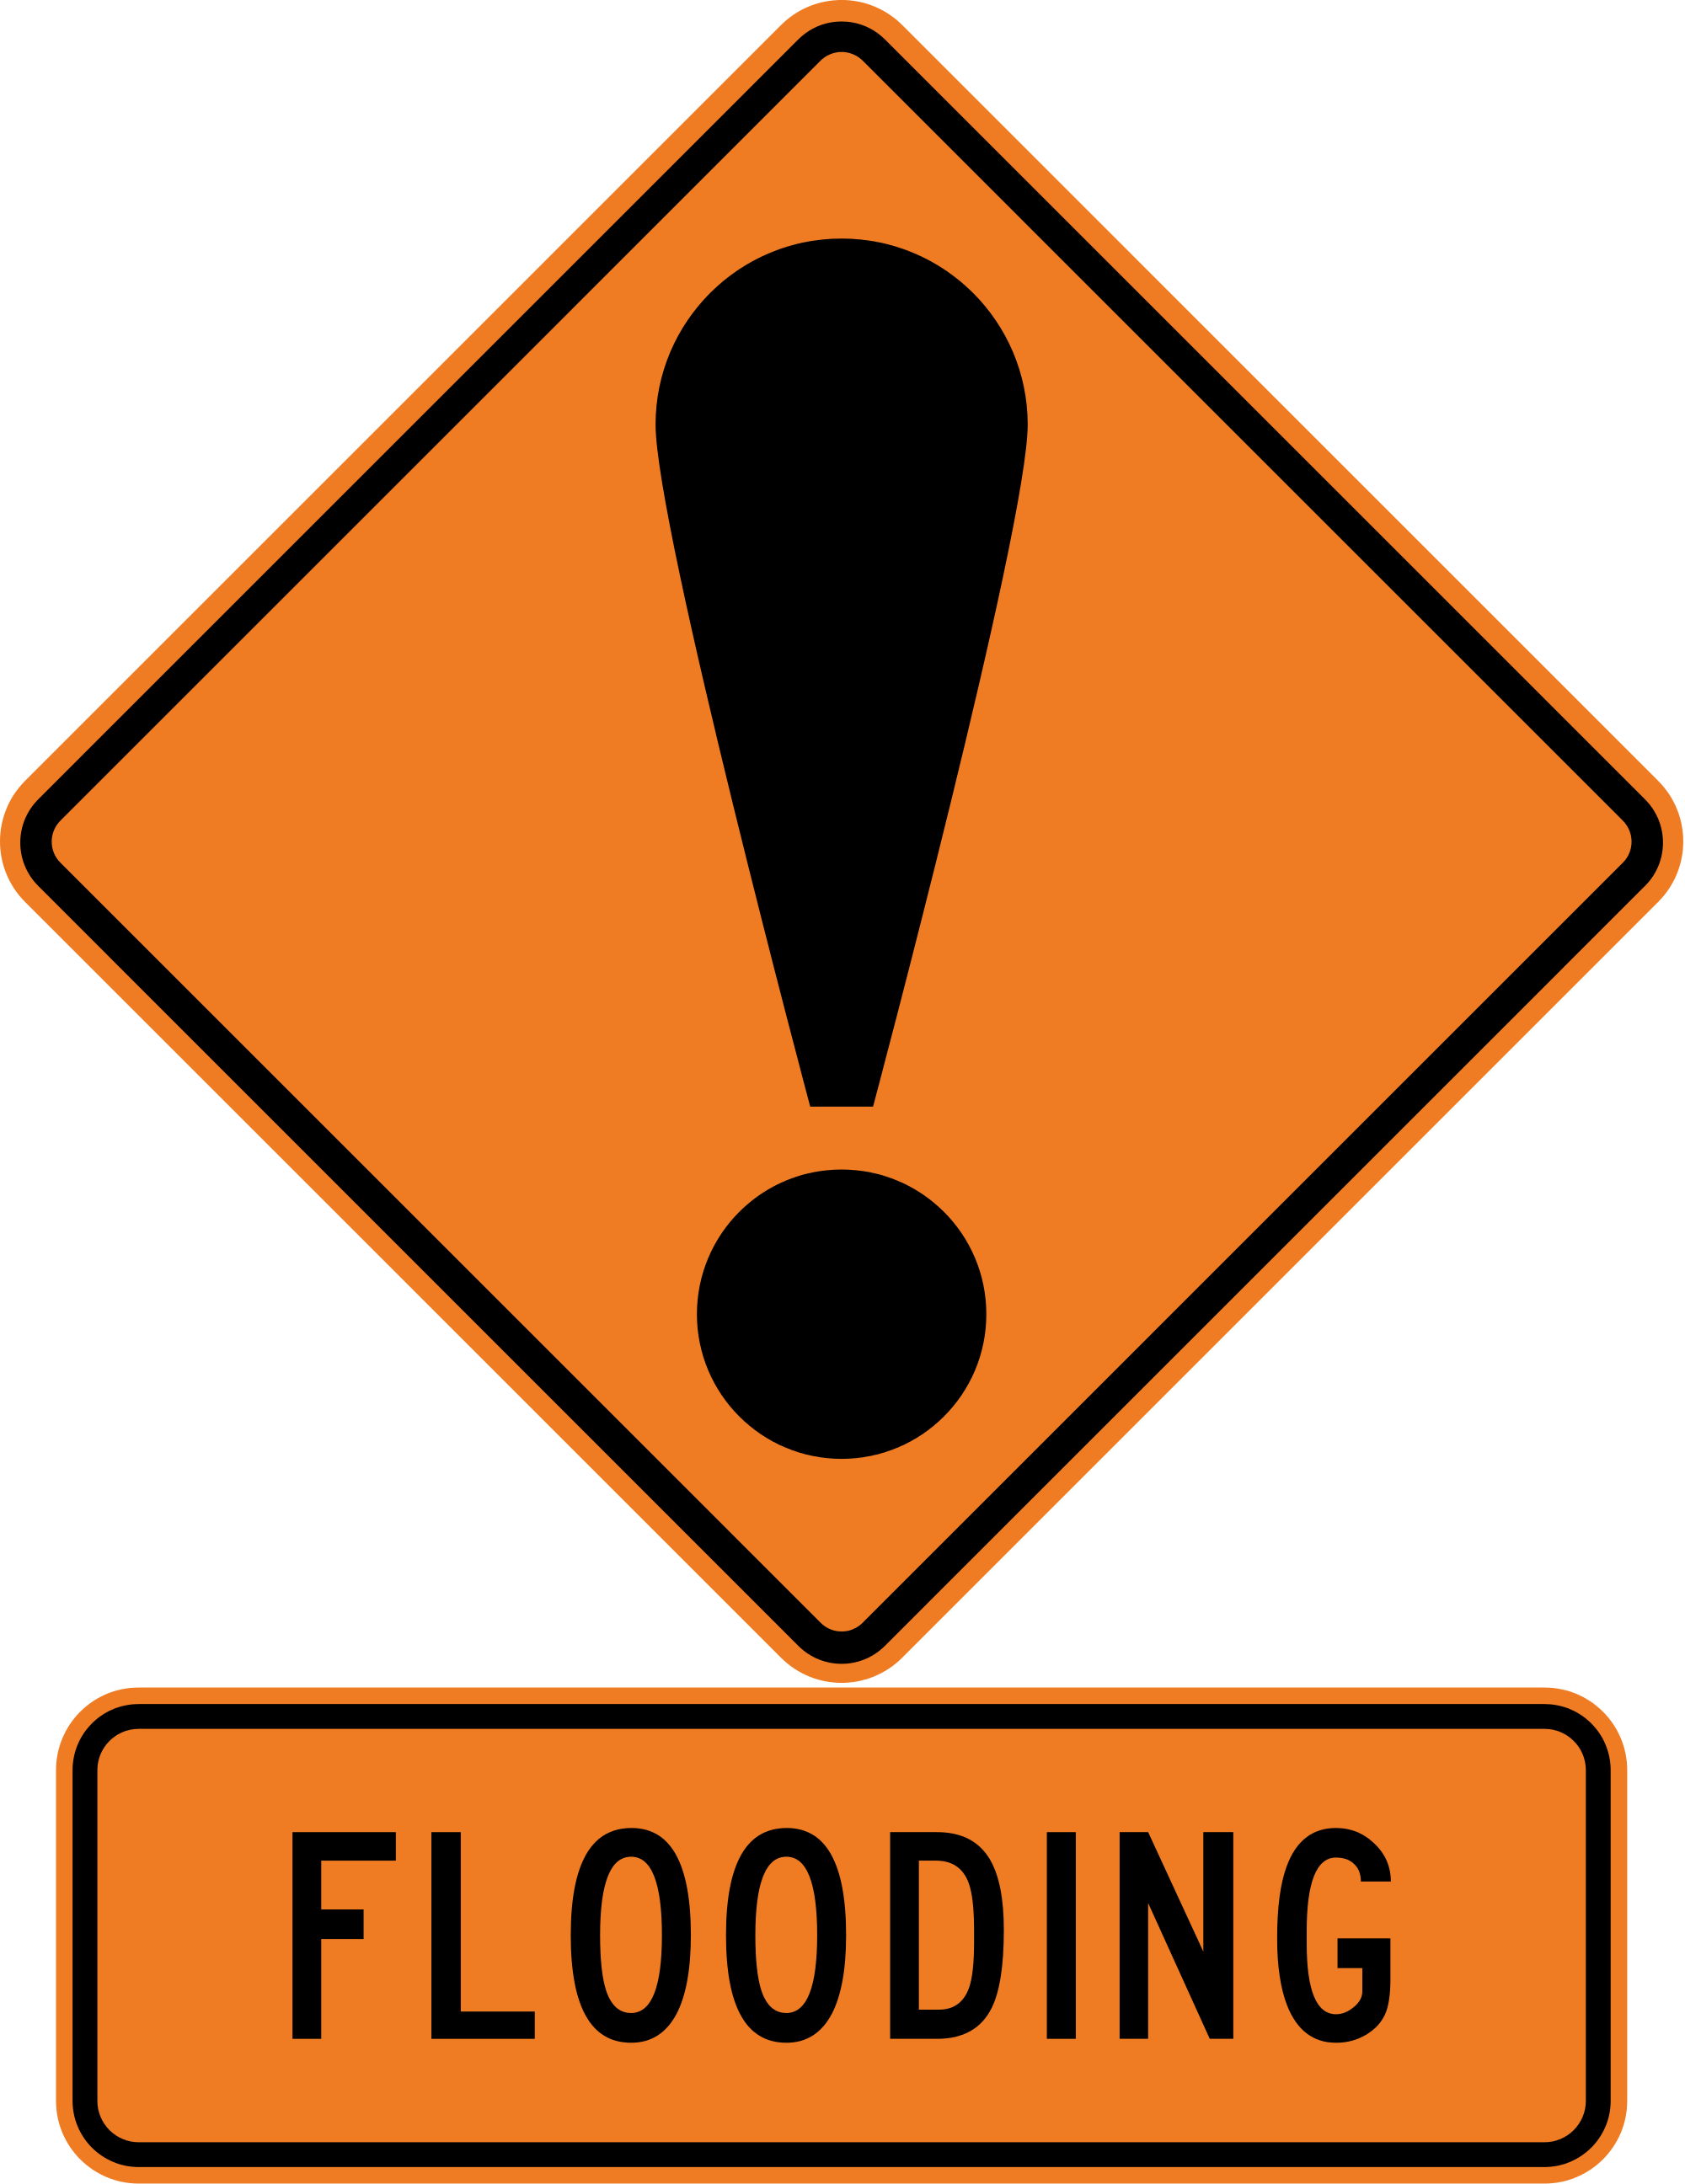 Flood clipart river flood. Flooding affects many areas